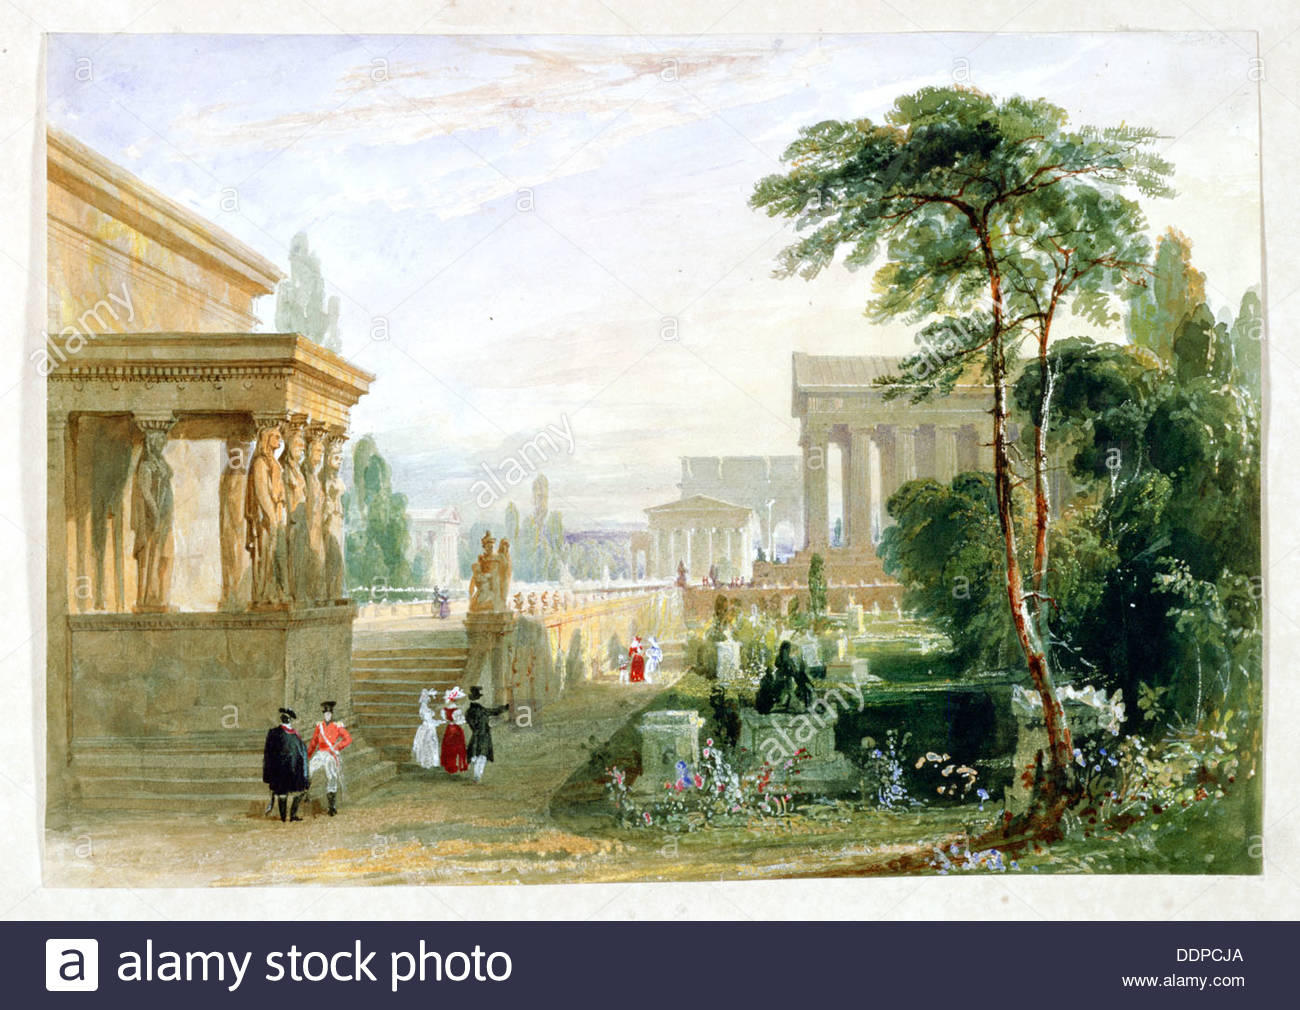 The Proposed Grand National Cemetery, 1830. Artist: Francis Goodwin - Stock Image